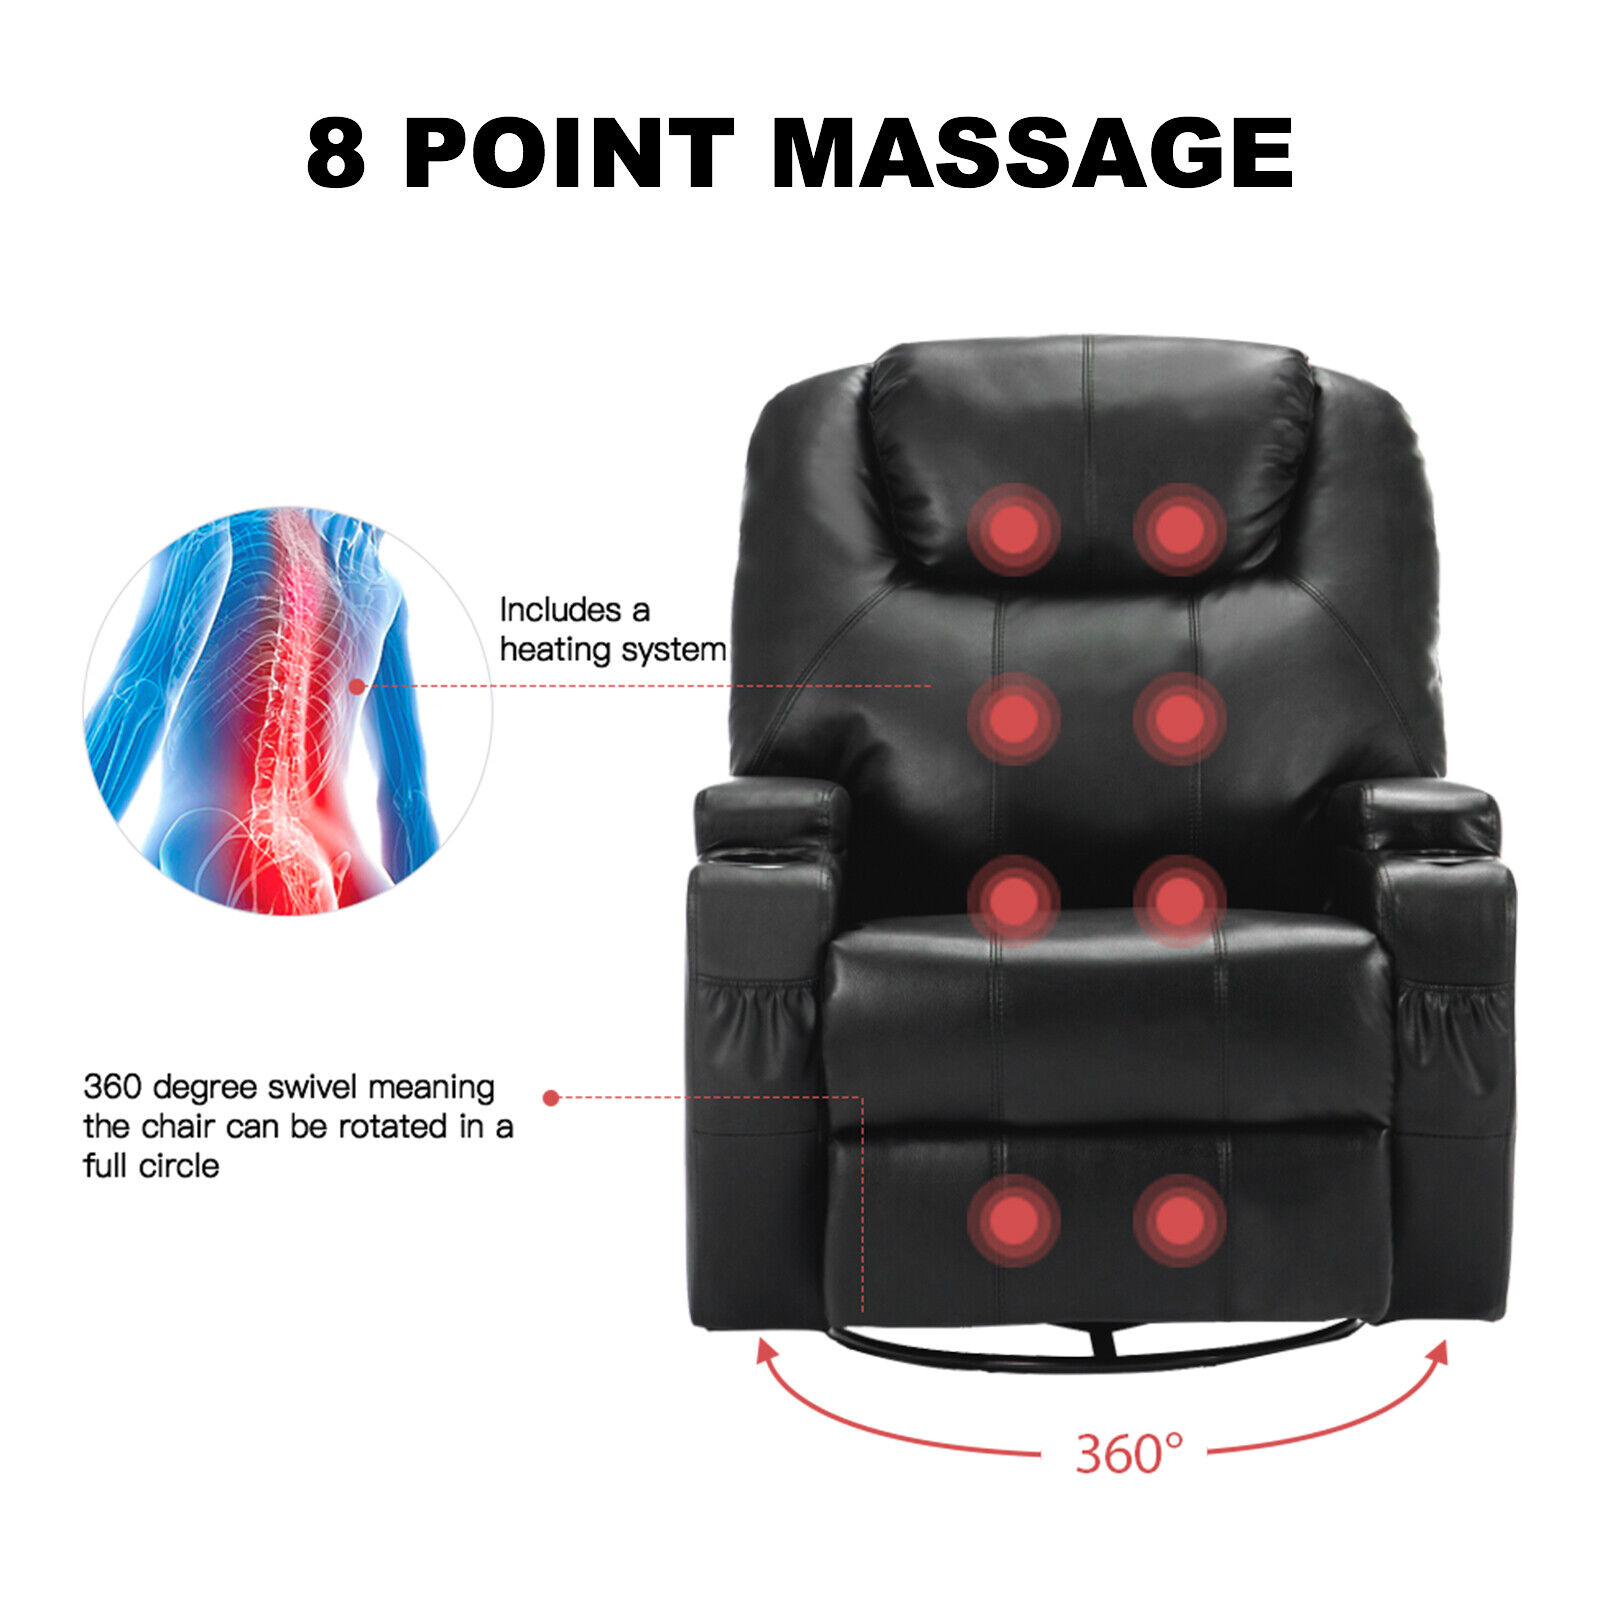 Remarkable Details About Electric Swivel Heated Massage Chair Leather Power Recliner Sofa Armchairs Short Links Chair Design For Home Short Linksinfo